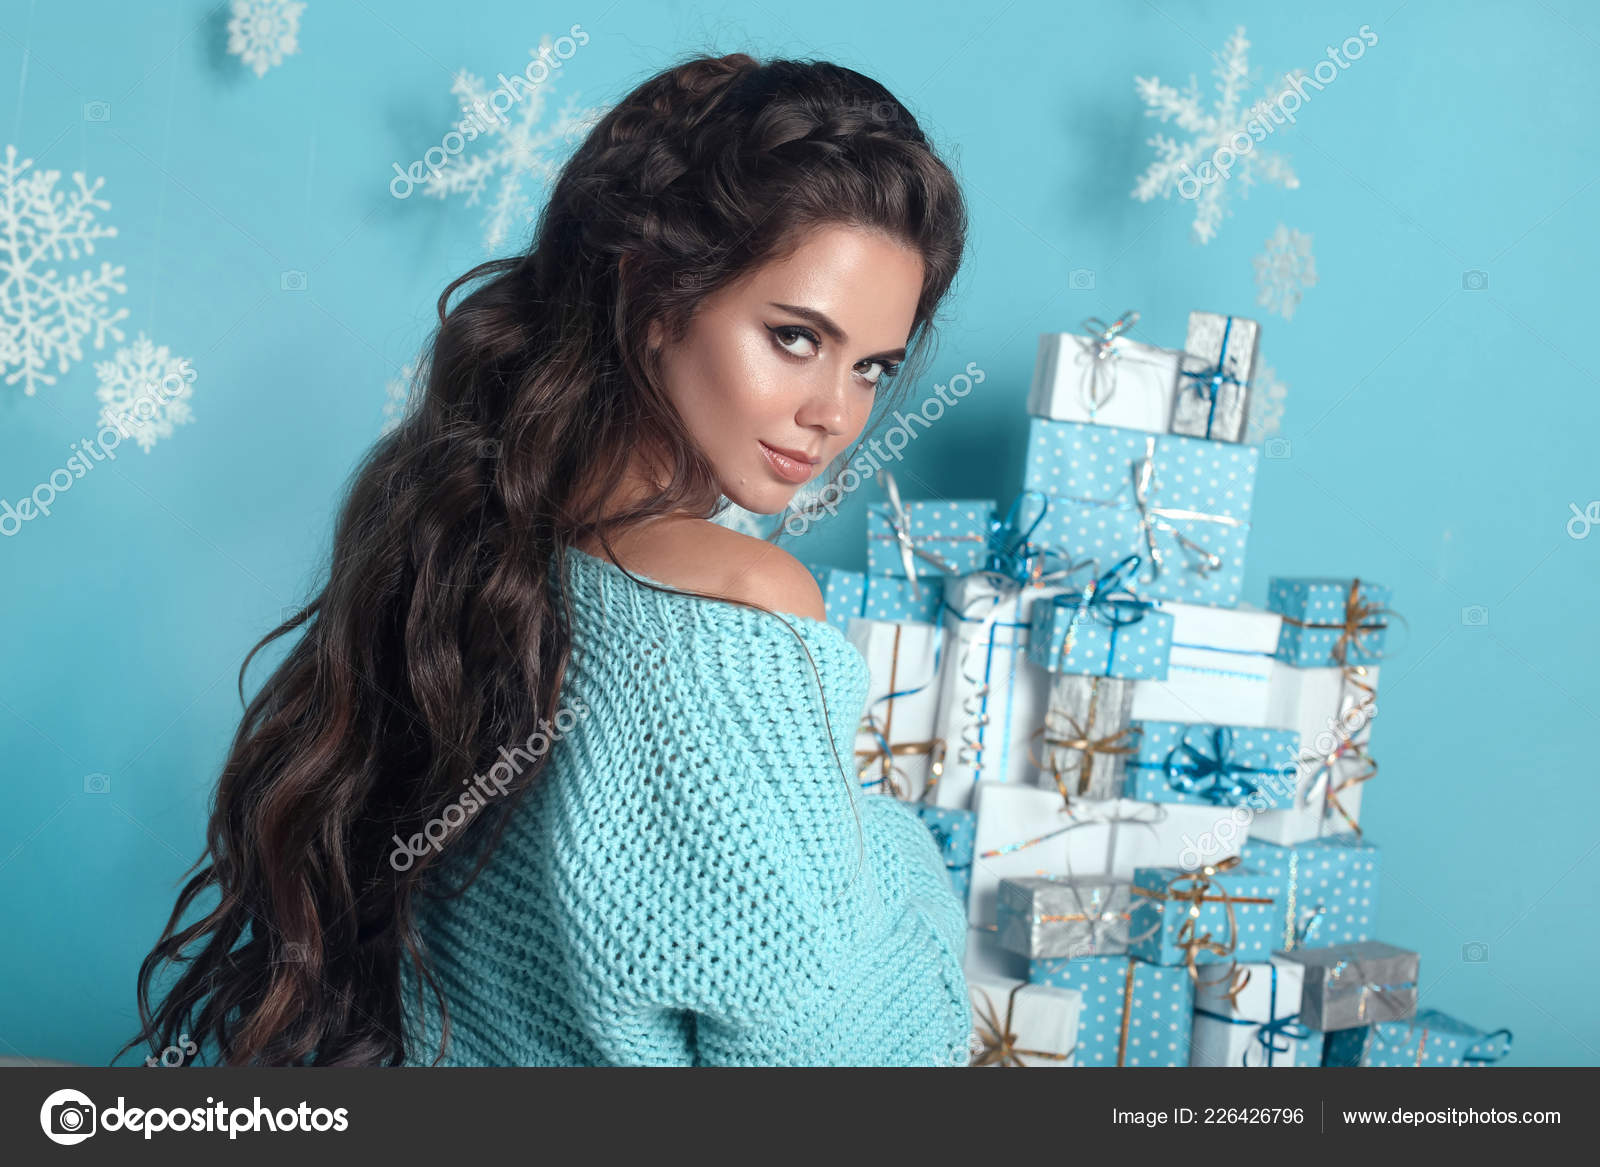 Christmas Hairstyles For Black Hair.Christmas Hairstyle Portrait Attractive Woman Wedding Wavy